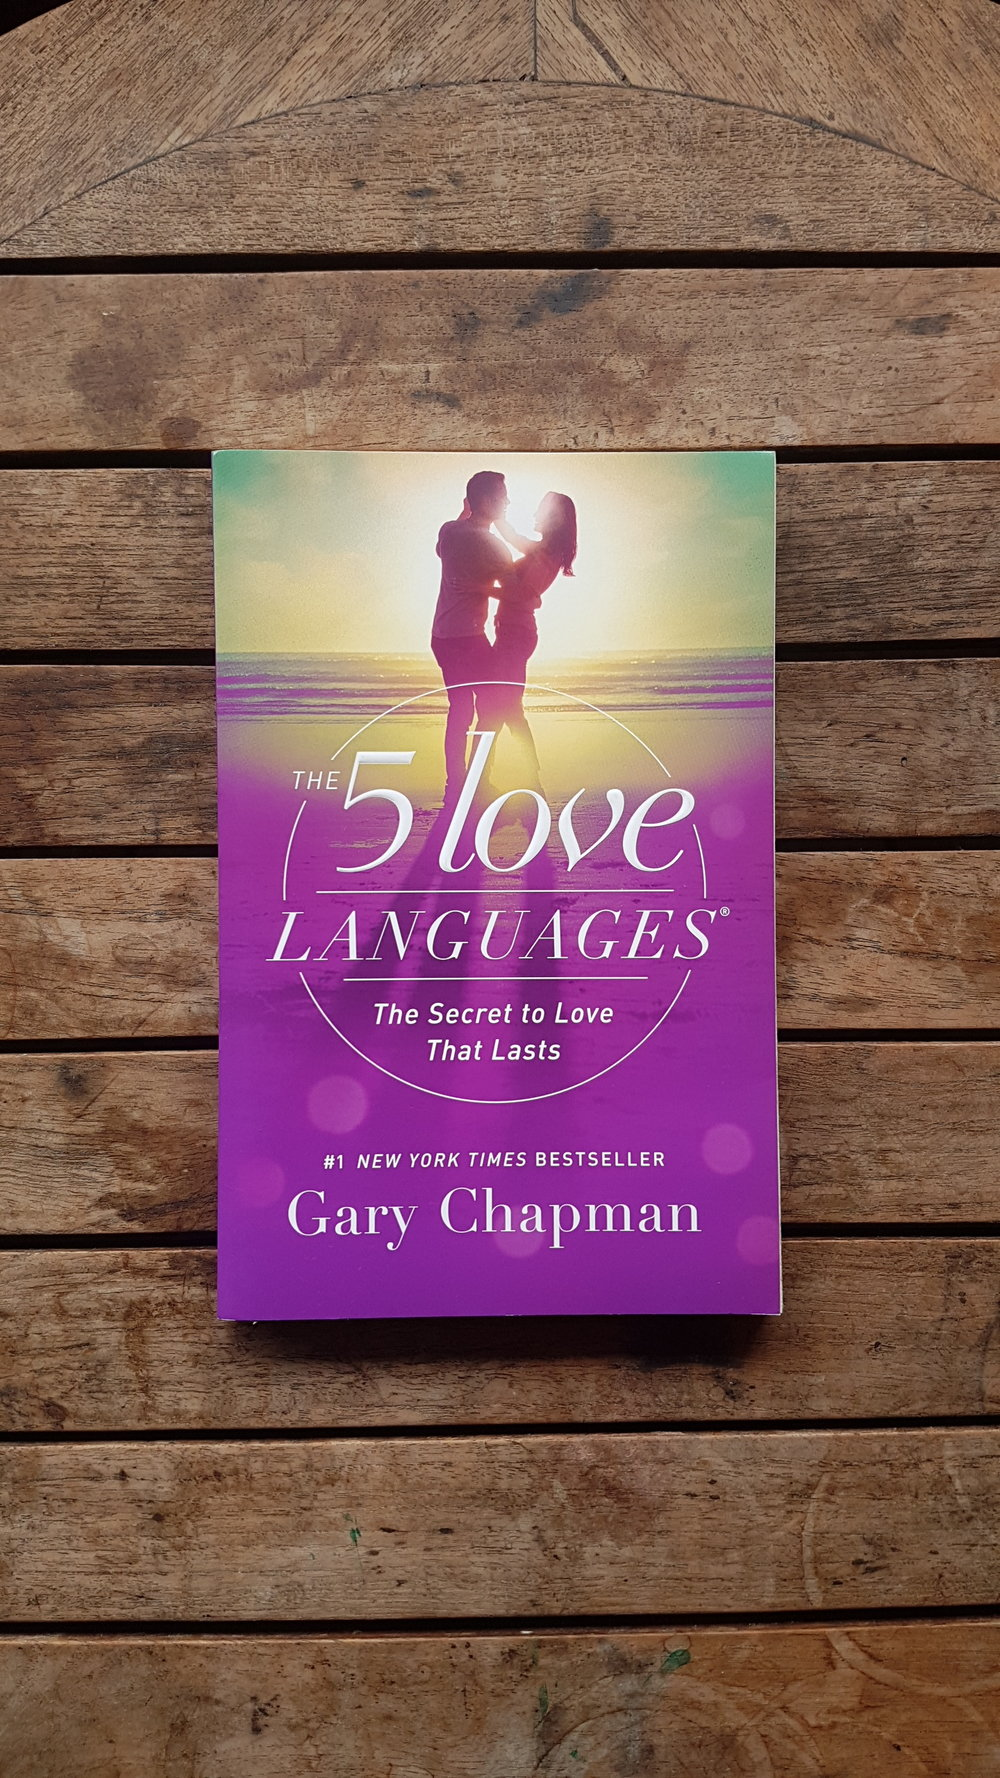 The 5 Love Languages: The Secret to Love that Lasts   by Gary Chapman